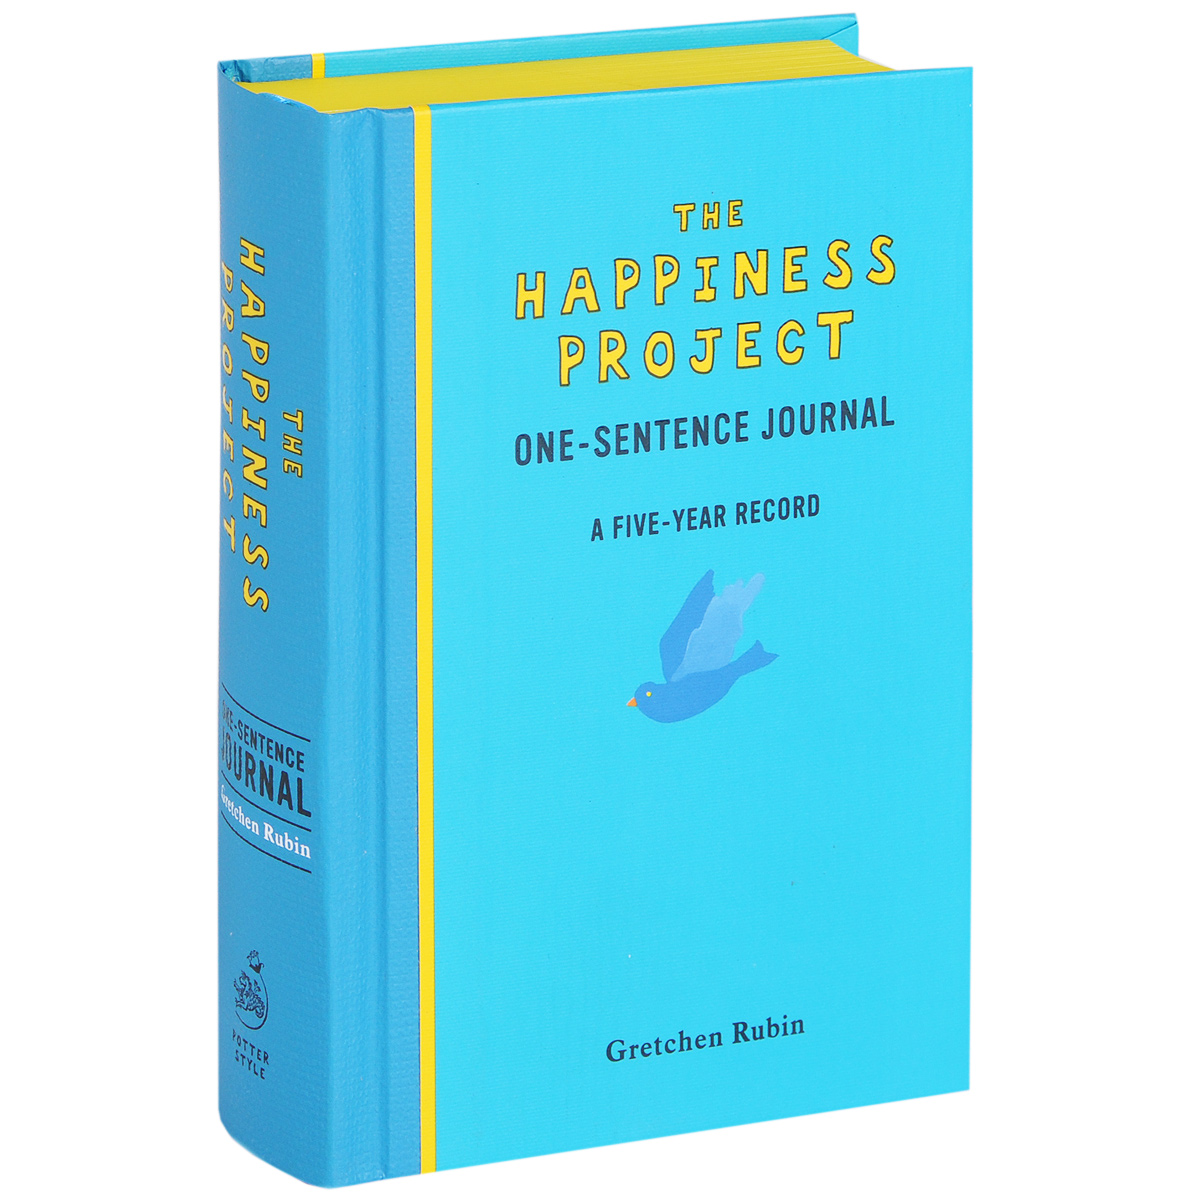 The Happiness Project: One-Sentence Journal: A Five-Year Record